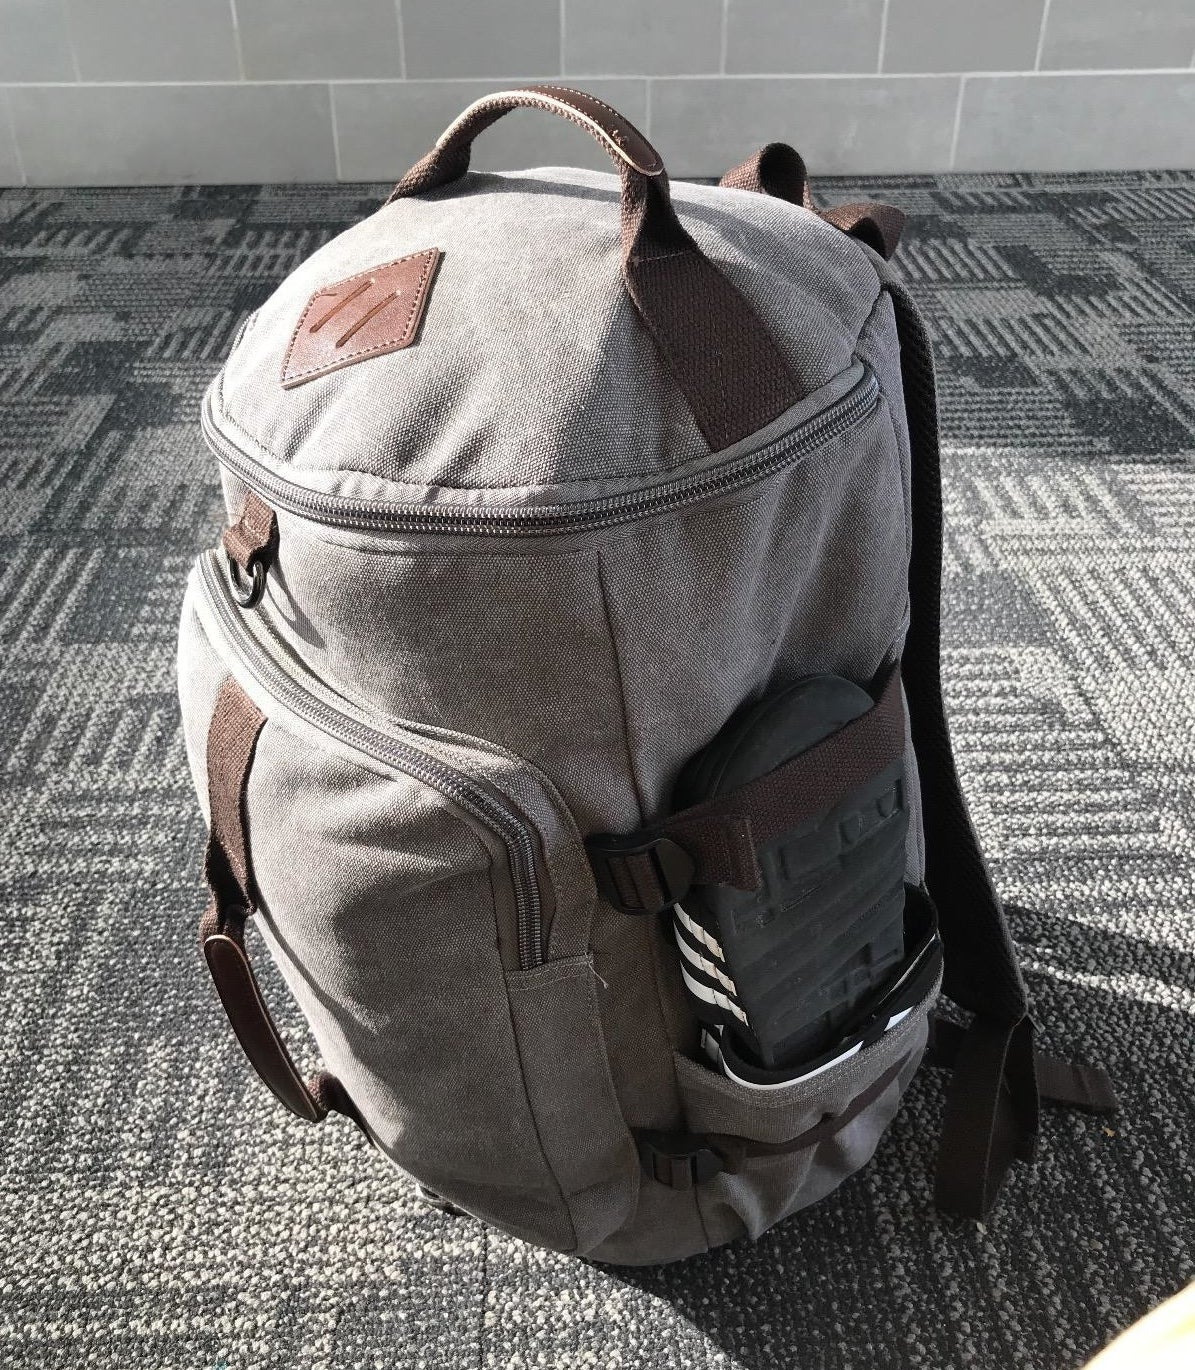 Reviewer photo of a grey canvas backpack with a bucket-style pocket, front pocket, and a side pocket holding sandals